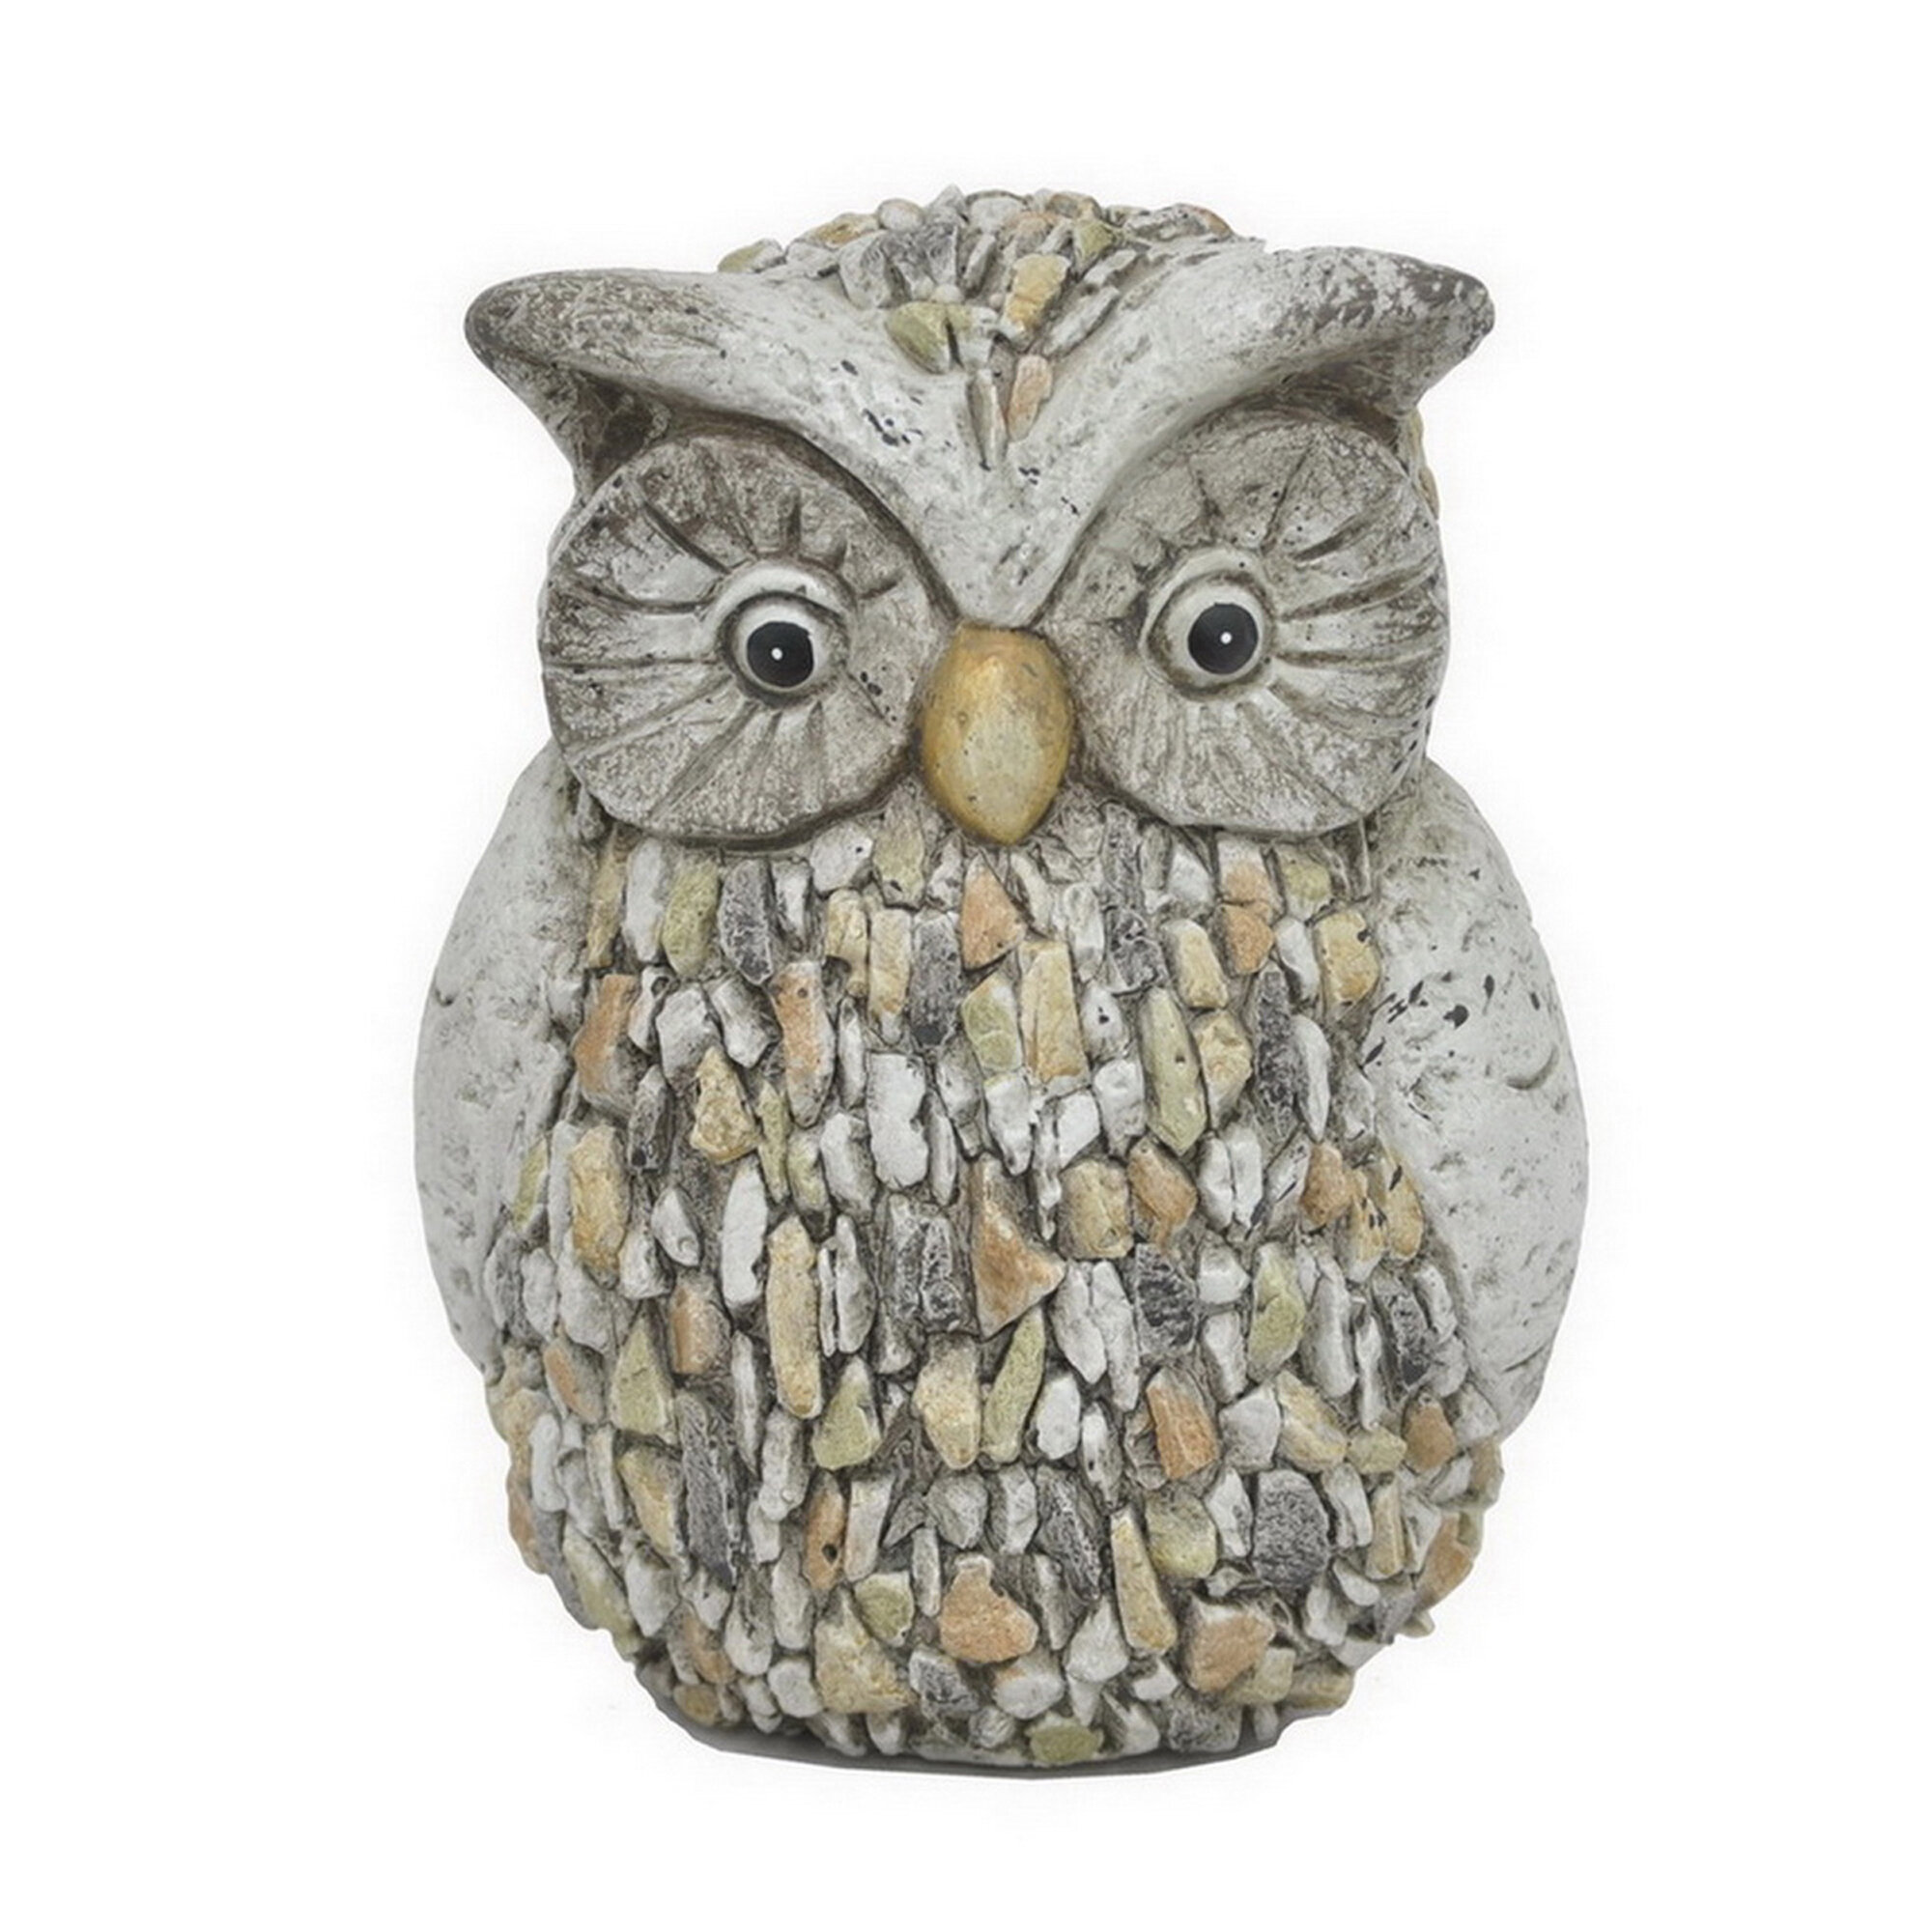 Three Hands Co. Owl Figurine